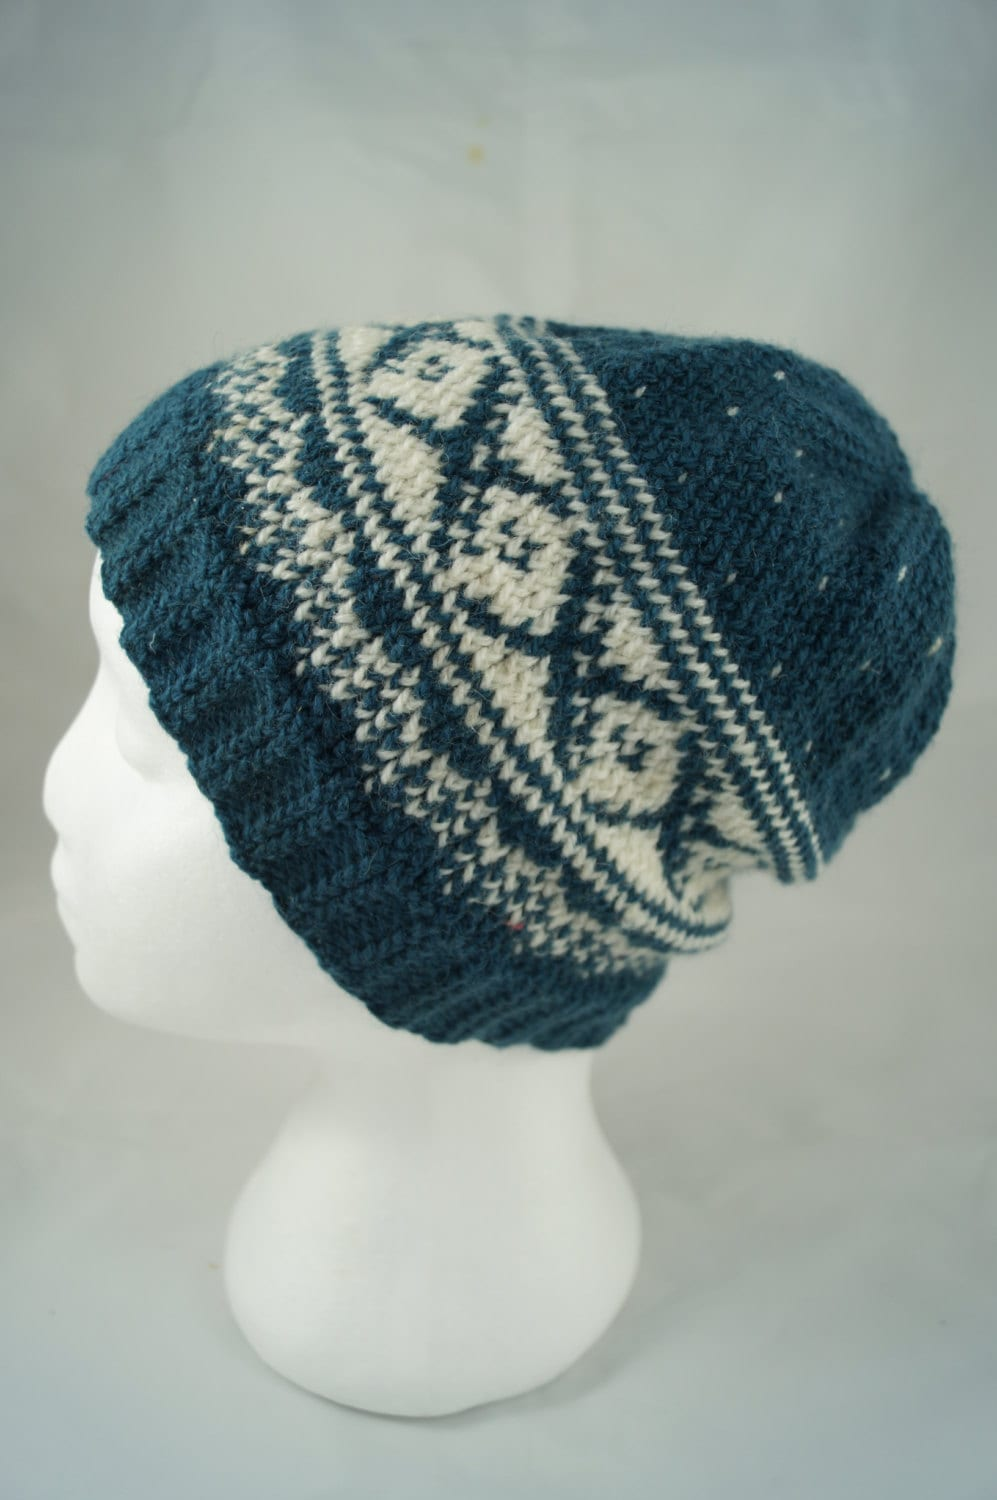 Knitting Patterns For Nordic Hats : Knit fair isle hat pom pom hat Nordic knitted hat Hand Knit